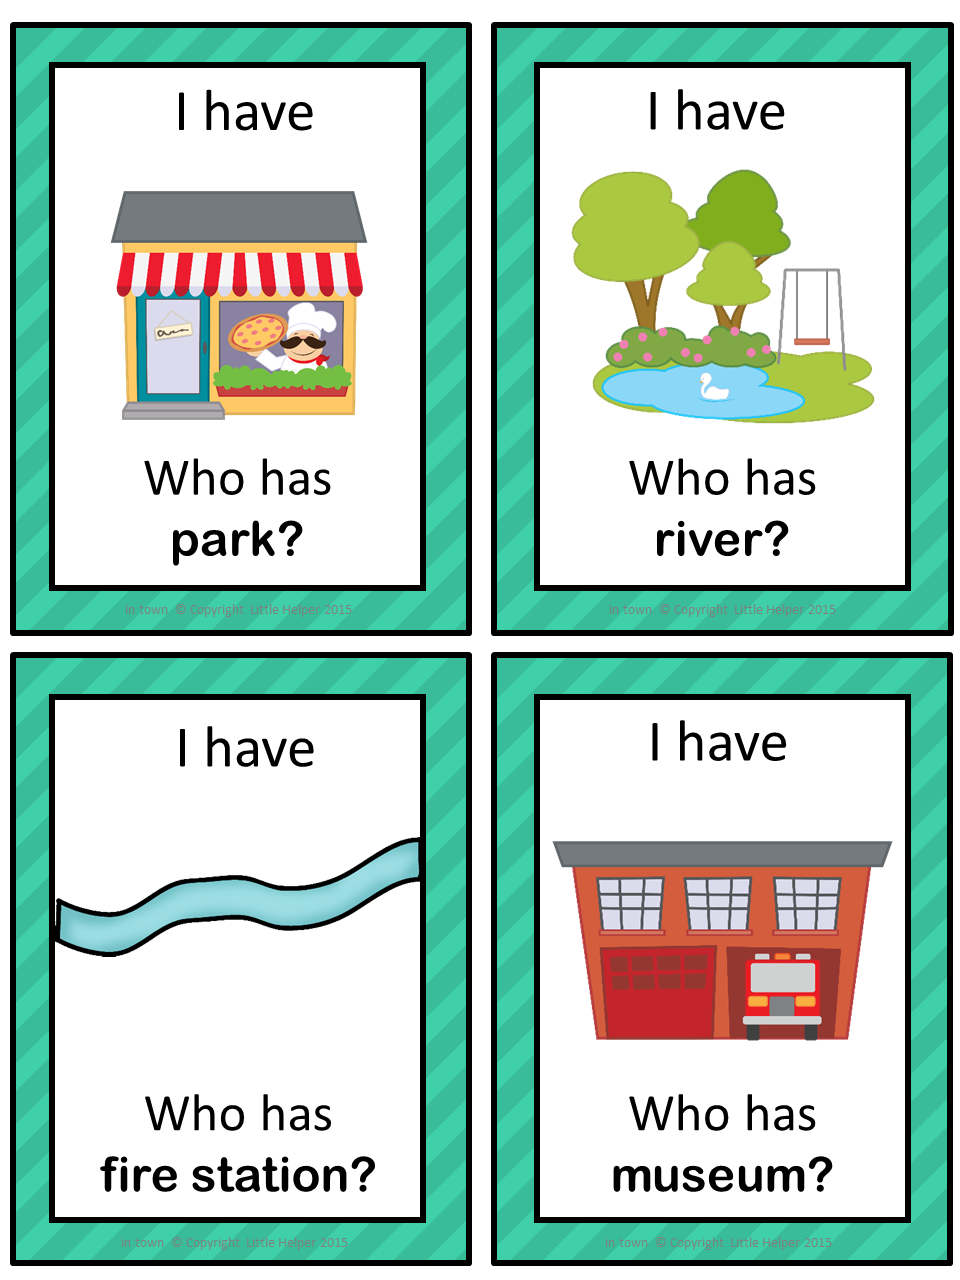 ESL In Town I have ... Who has ...? game | English | Pinterest ...